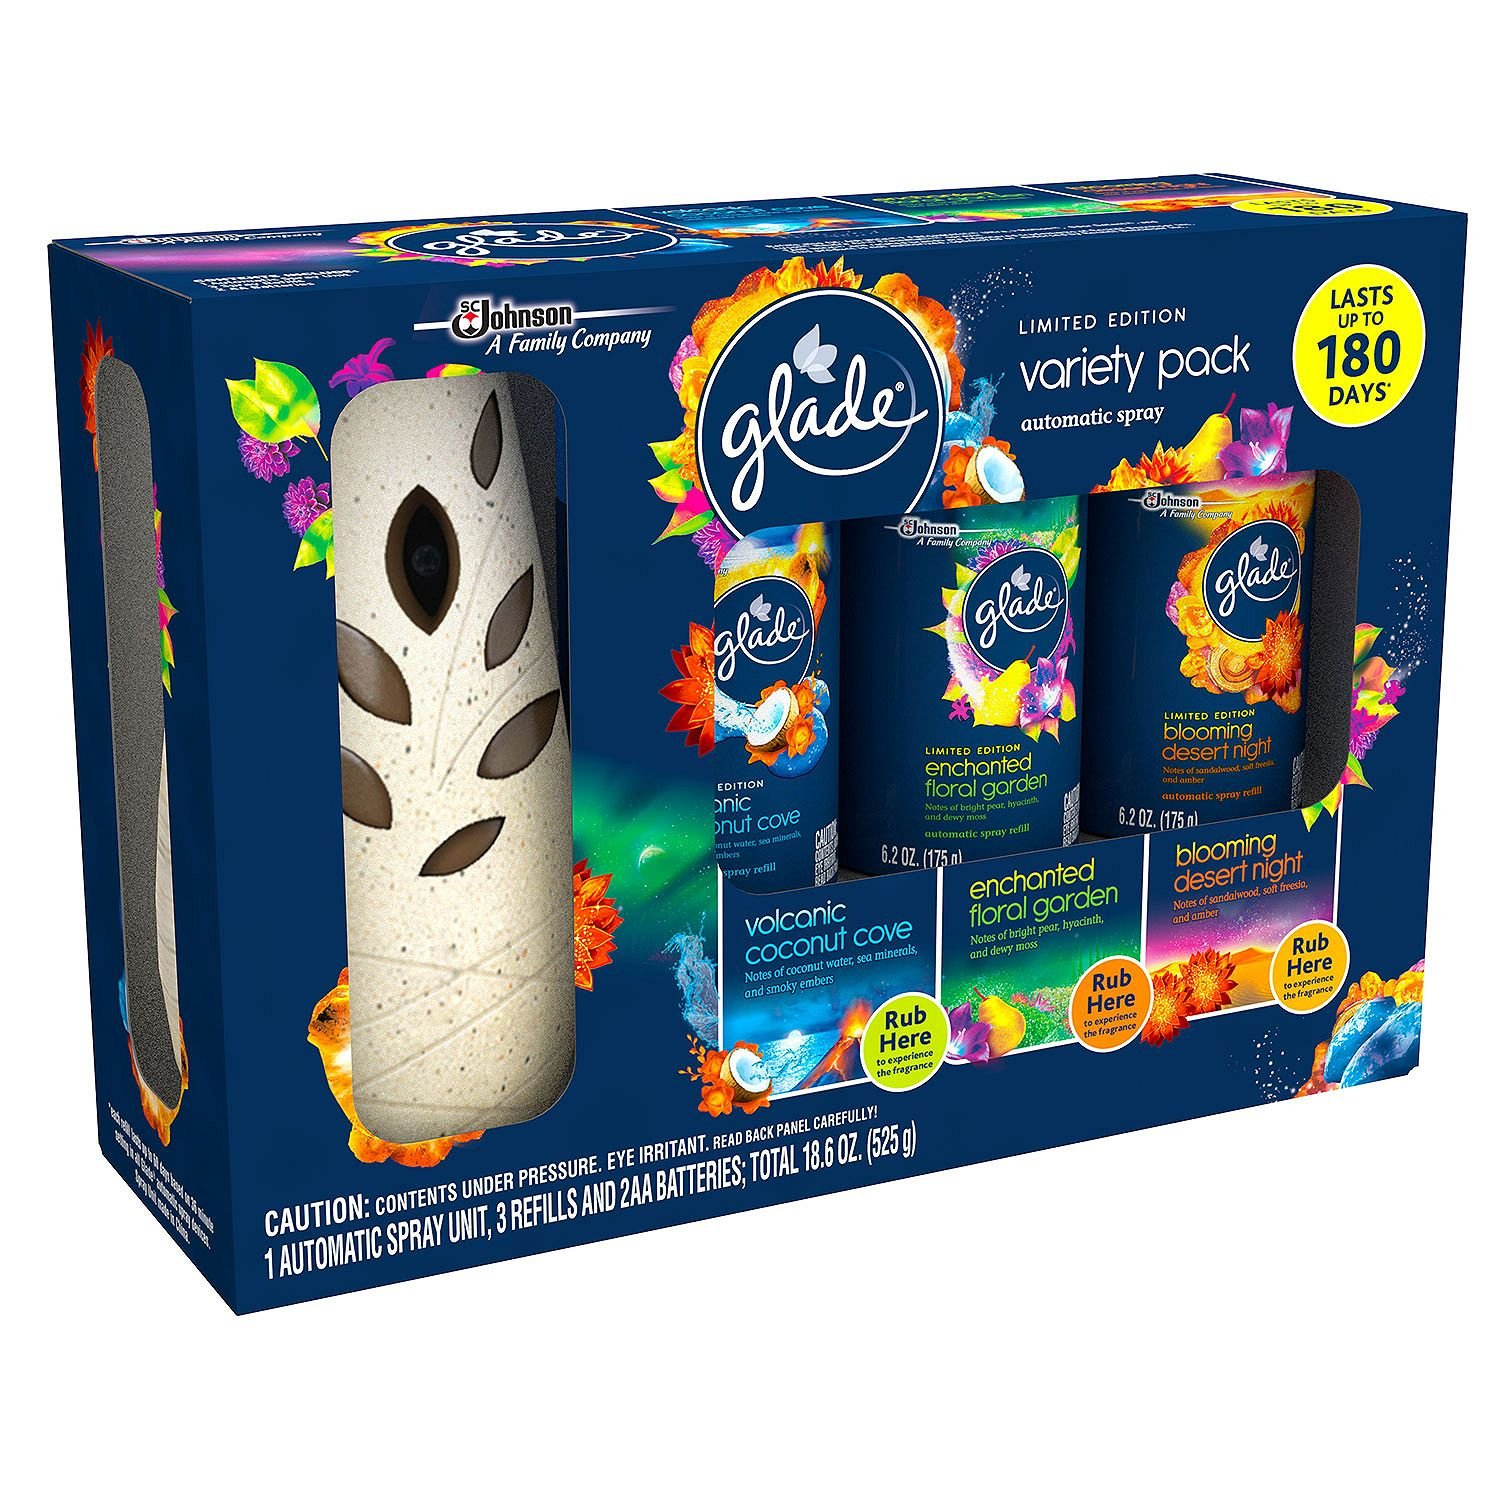 Glade Limited Edition Variety Pack